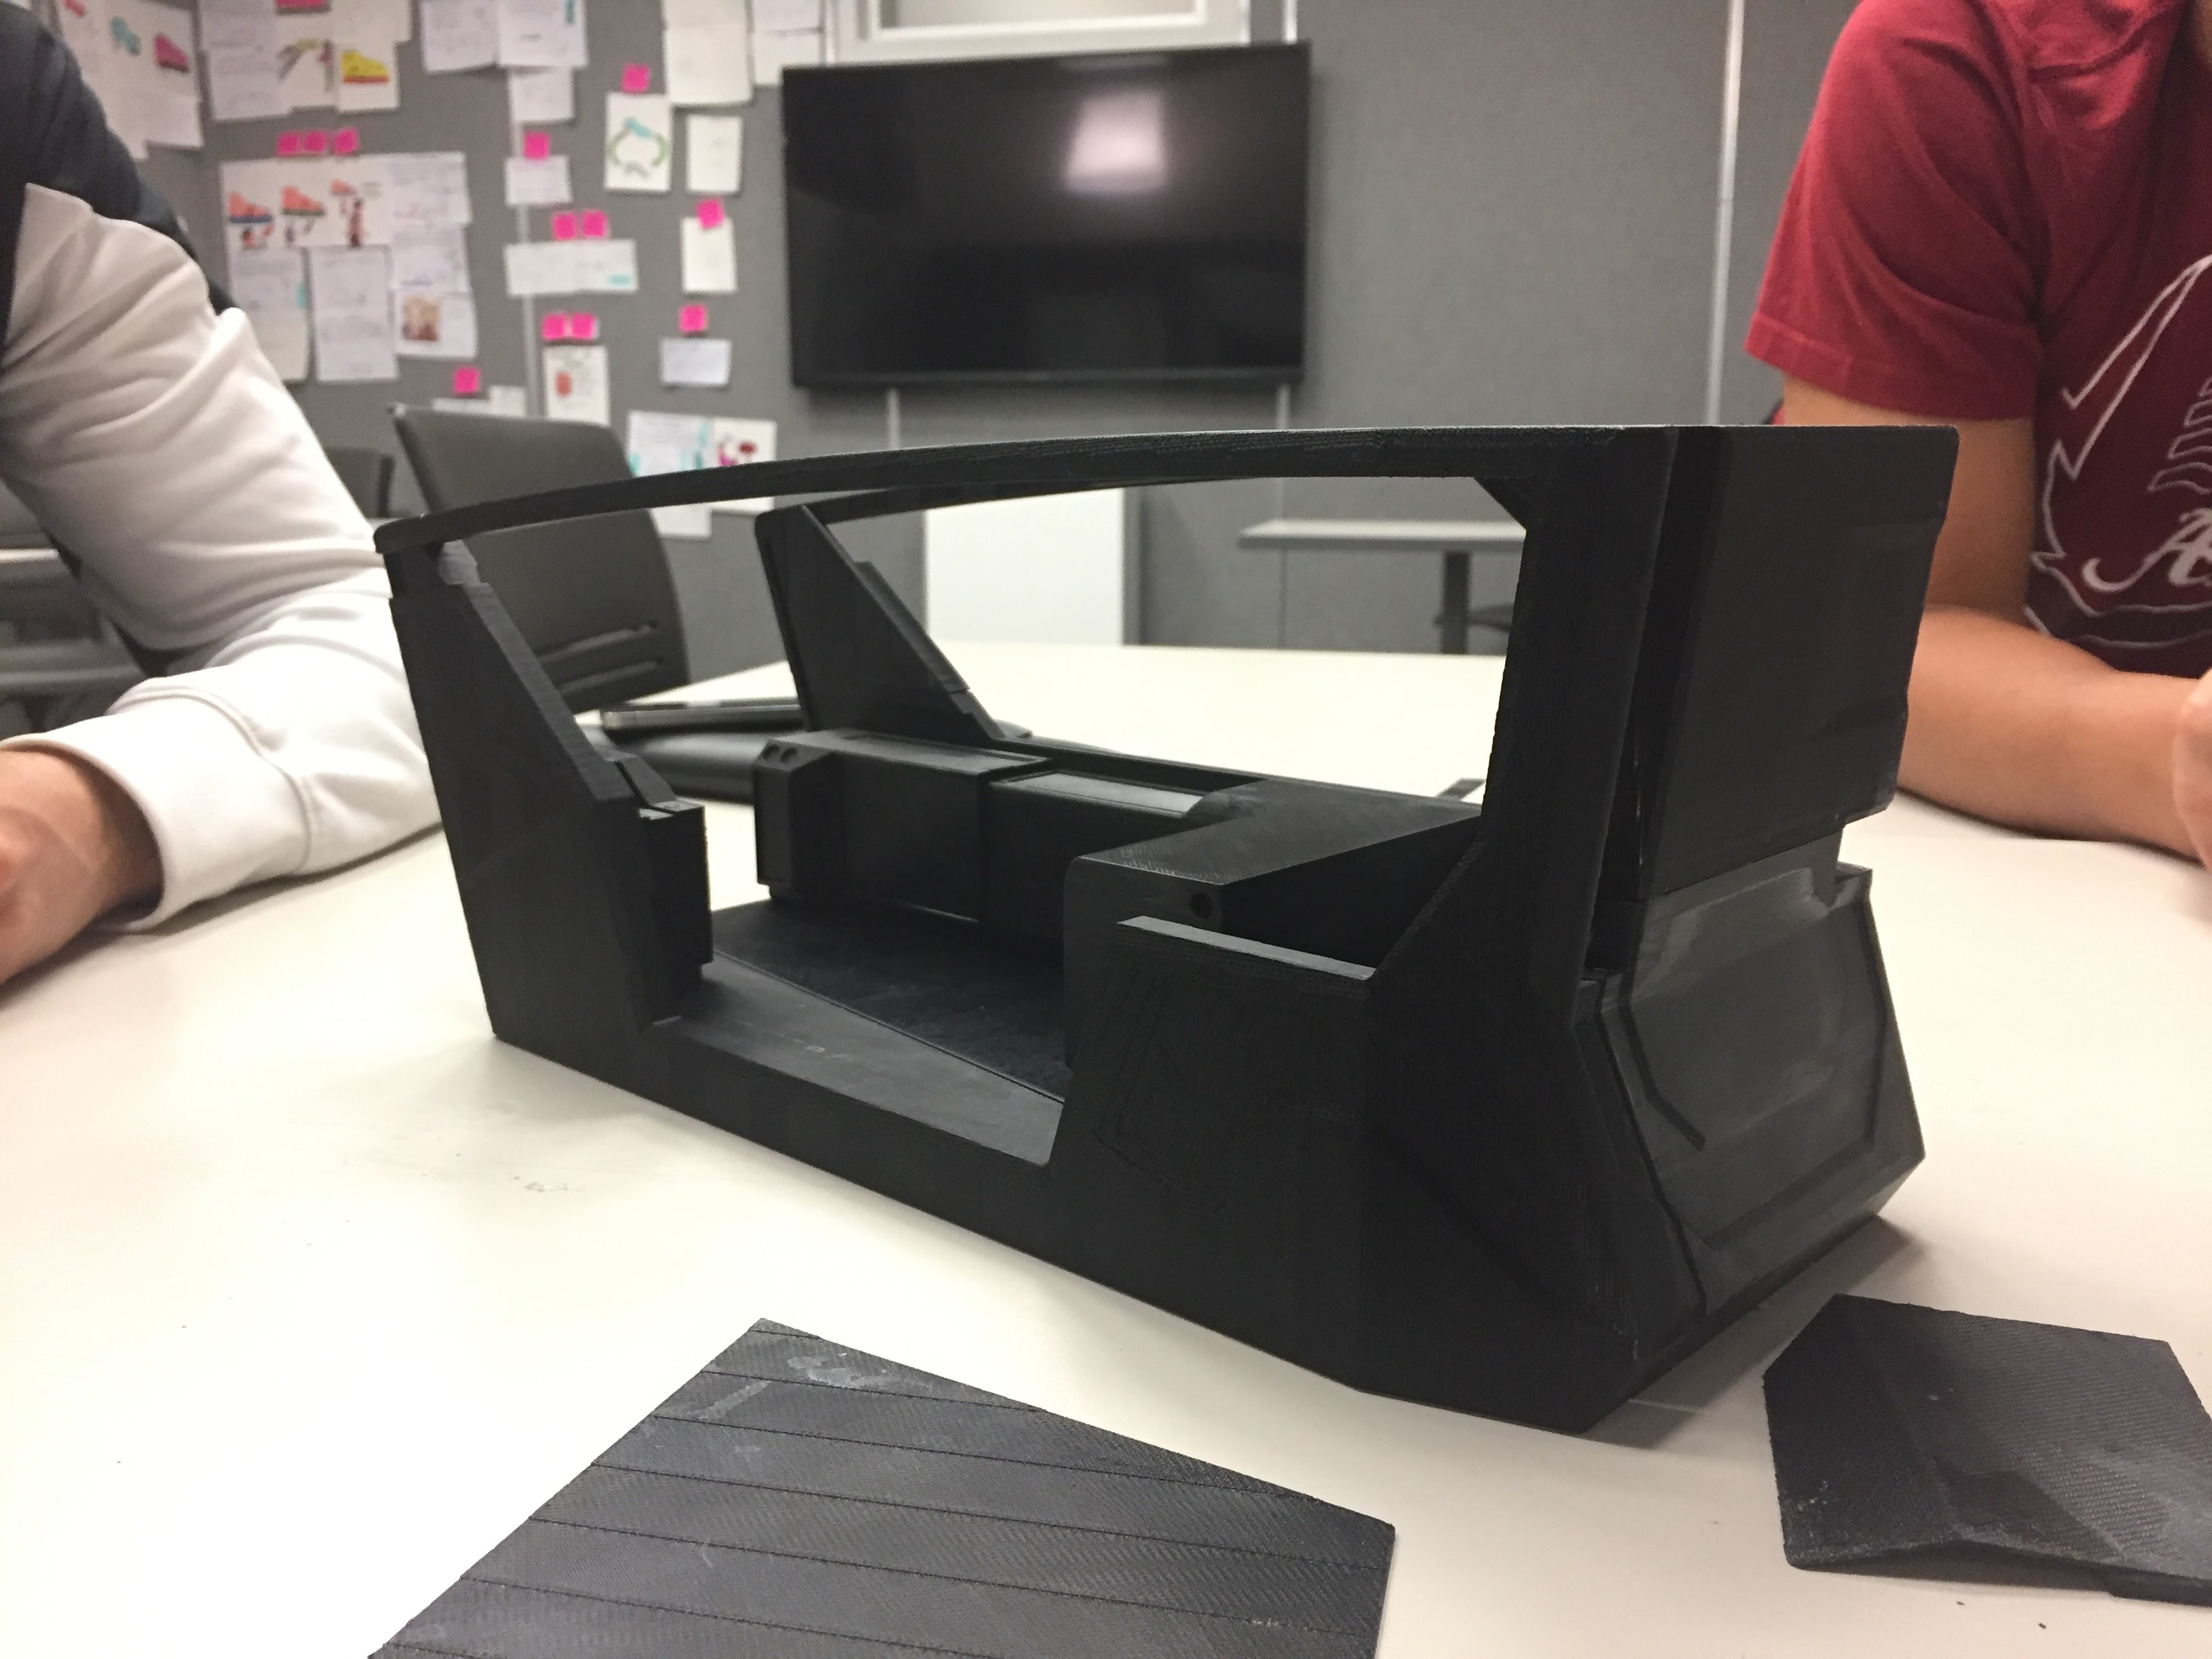 The 3D printed scale model helped us conceptualize and lay out the space using inserts and photoshop.